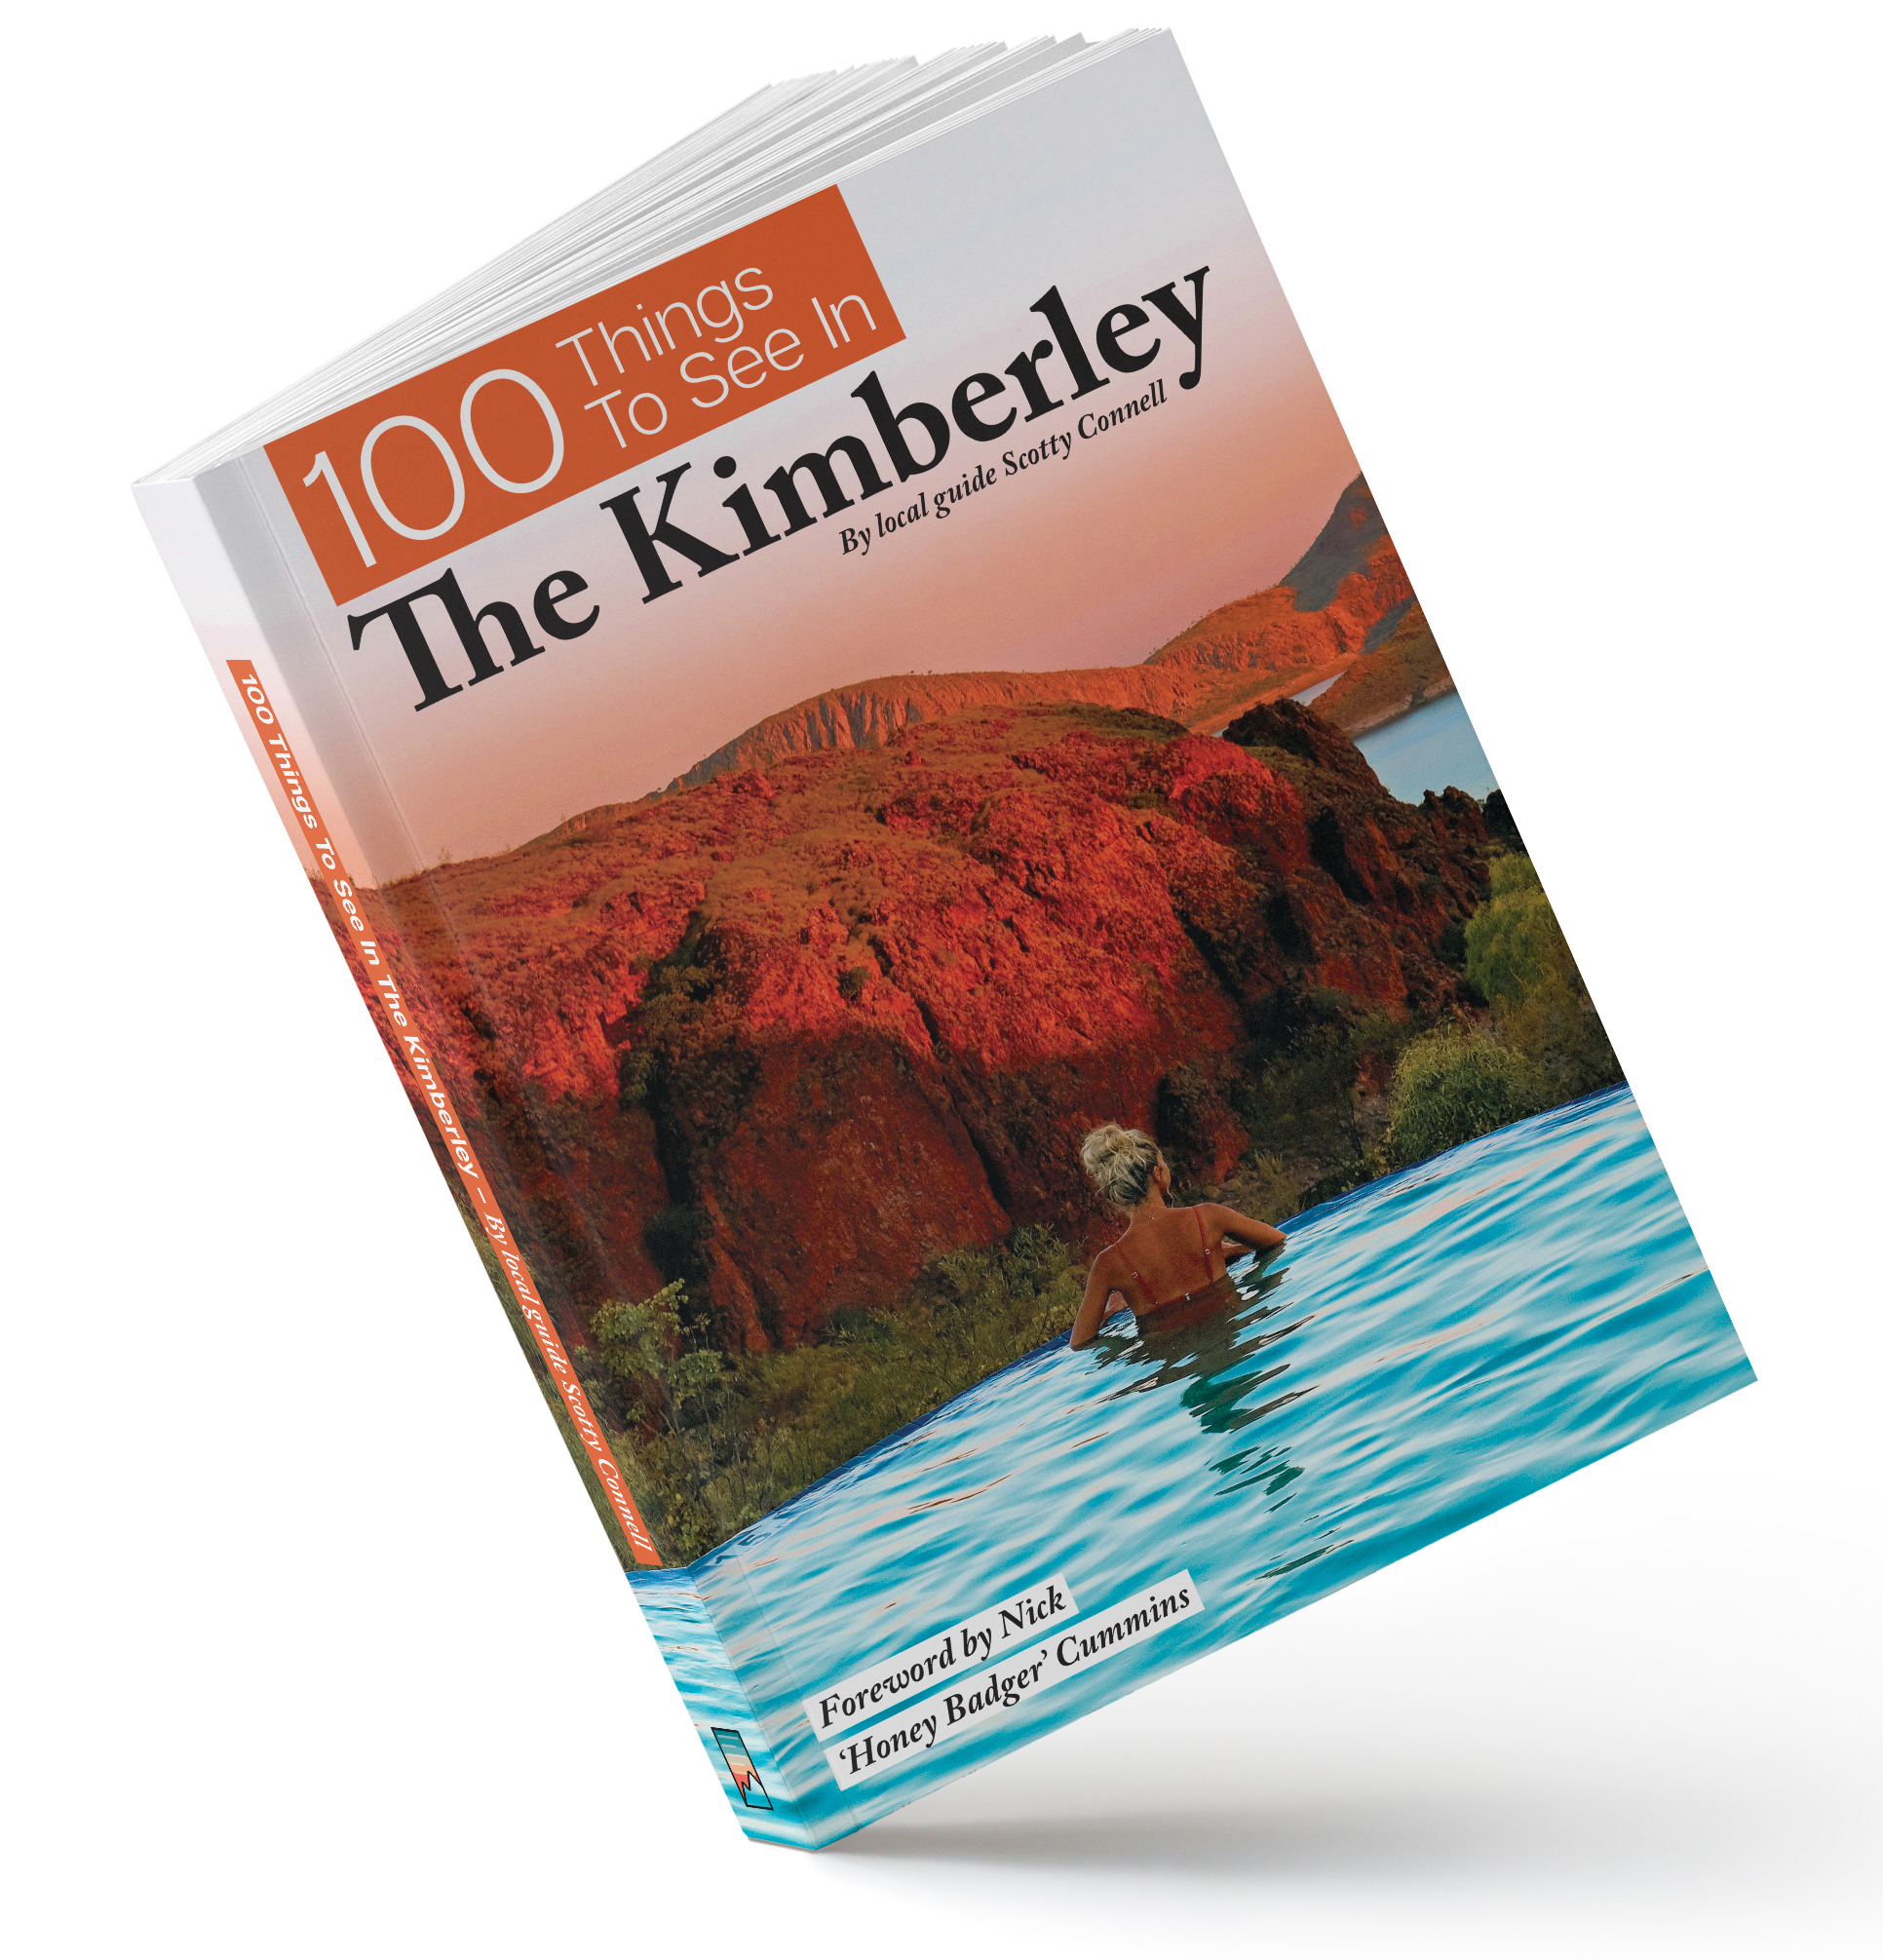 "my book - Release date - 25 March 2019. ""100 Things To See In The Kimberley"" is the culmination of a life spent exploring Australia's wild and remote north west. Our guide, Scotty, grew up in the Kimberley and has made it his mission to thoroughly explore the region via air, land and sea. Inside you'll find 100 of the best things to see and do all across the Kimberley – from stunning waterholes to cool off in, to incredible, natural wonders that are found nowhere else on earth.Grab your copy here - www.thekimberleyaustralia.com/book"